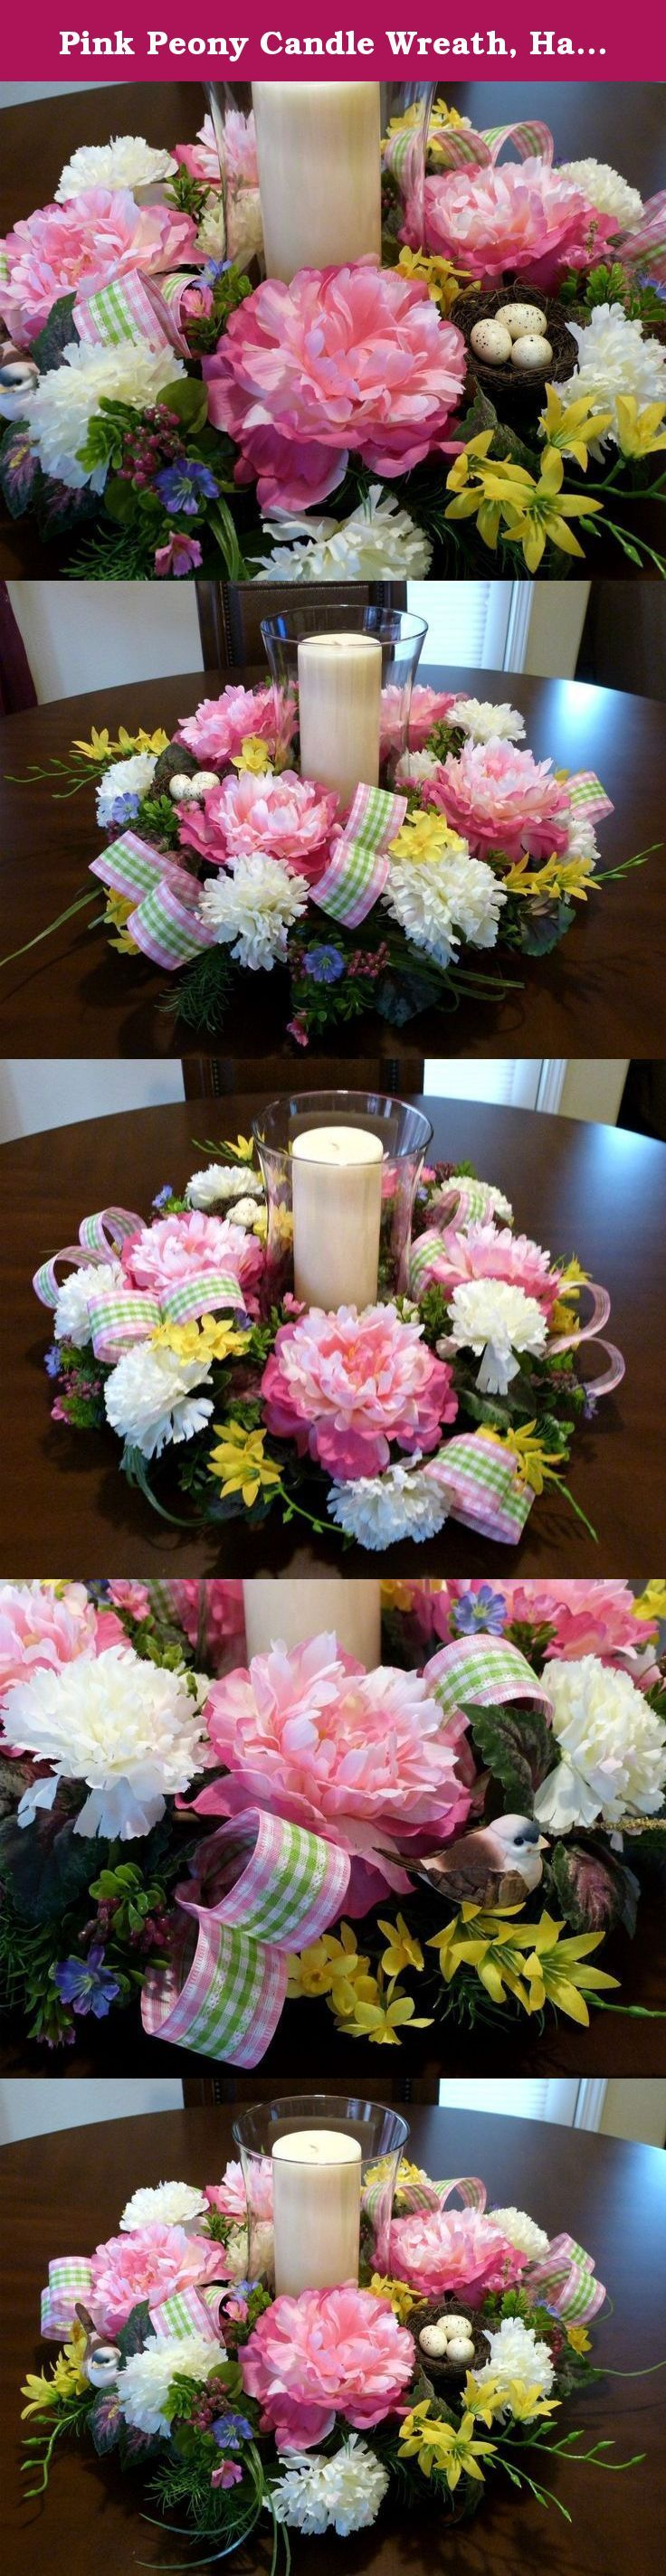 Pink Peony Candle Wreath, Handmade Table Wreath with Peonies, Candle Wreath With Peonies. This spring candle centerpiece was made on a 12 inch grapevine base with large pink/cream peonies, cream carnations, yellow narciscus, yellow freesia and more. There is an assortment of greenery including coleus and asparagus fern, pretty green/pink checkered ribbon and cute little bird and bird's nest. This centerpiece will add beauty to your home decor and would be perfect for a everyday…